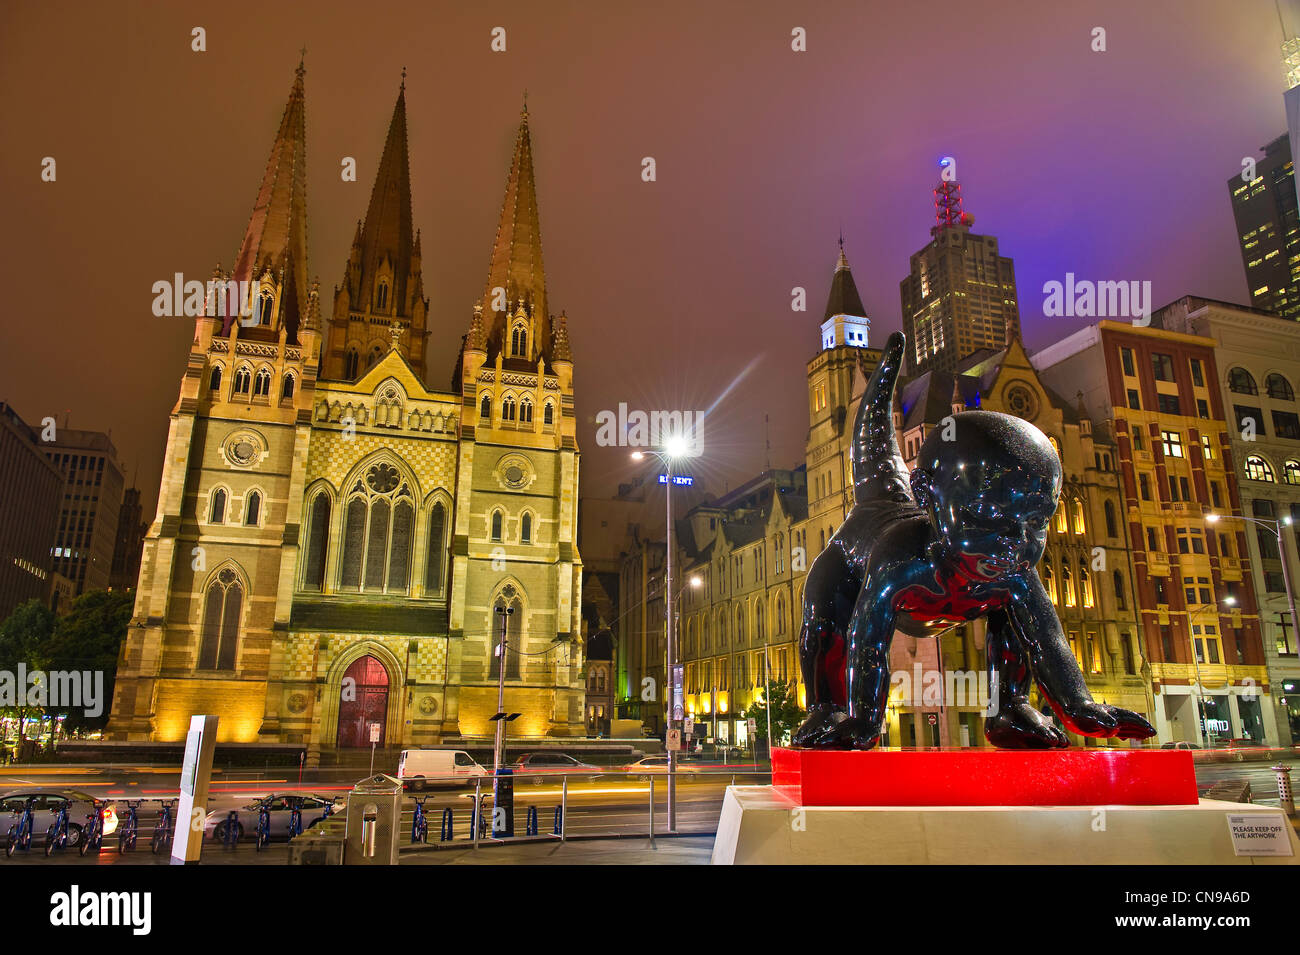 Australia, Victoria, Melbourne, Federation square, geant sculptur Angels-Demons by the Russian art collective AES+F - Stock Image